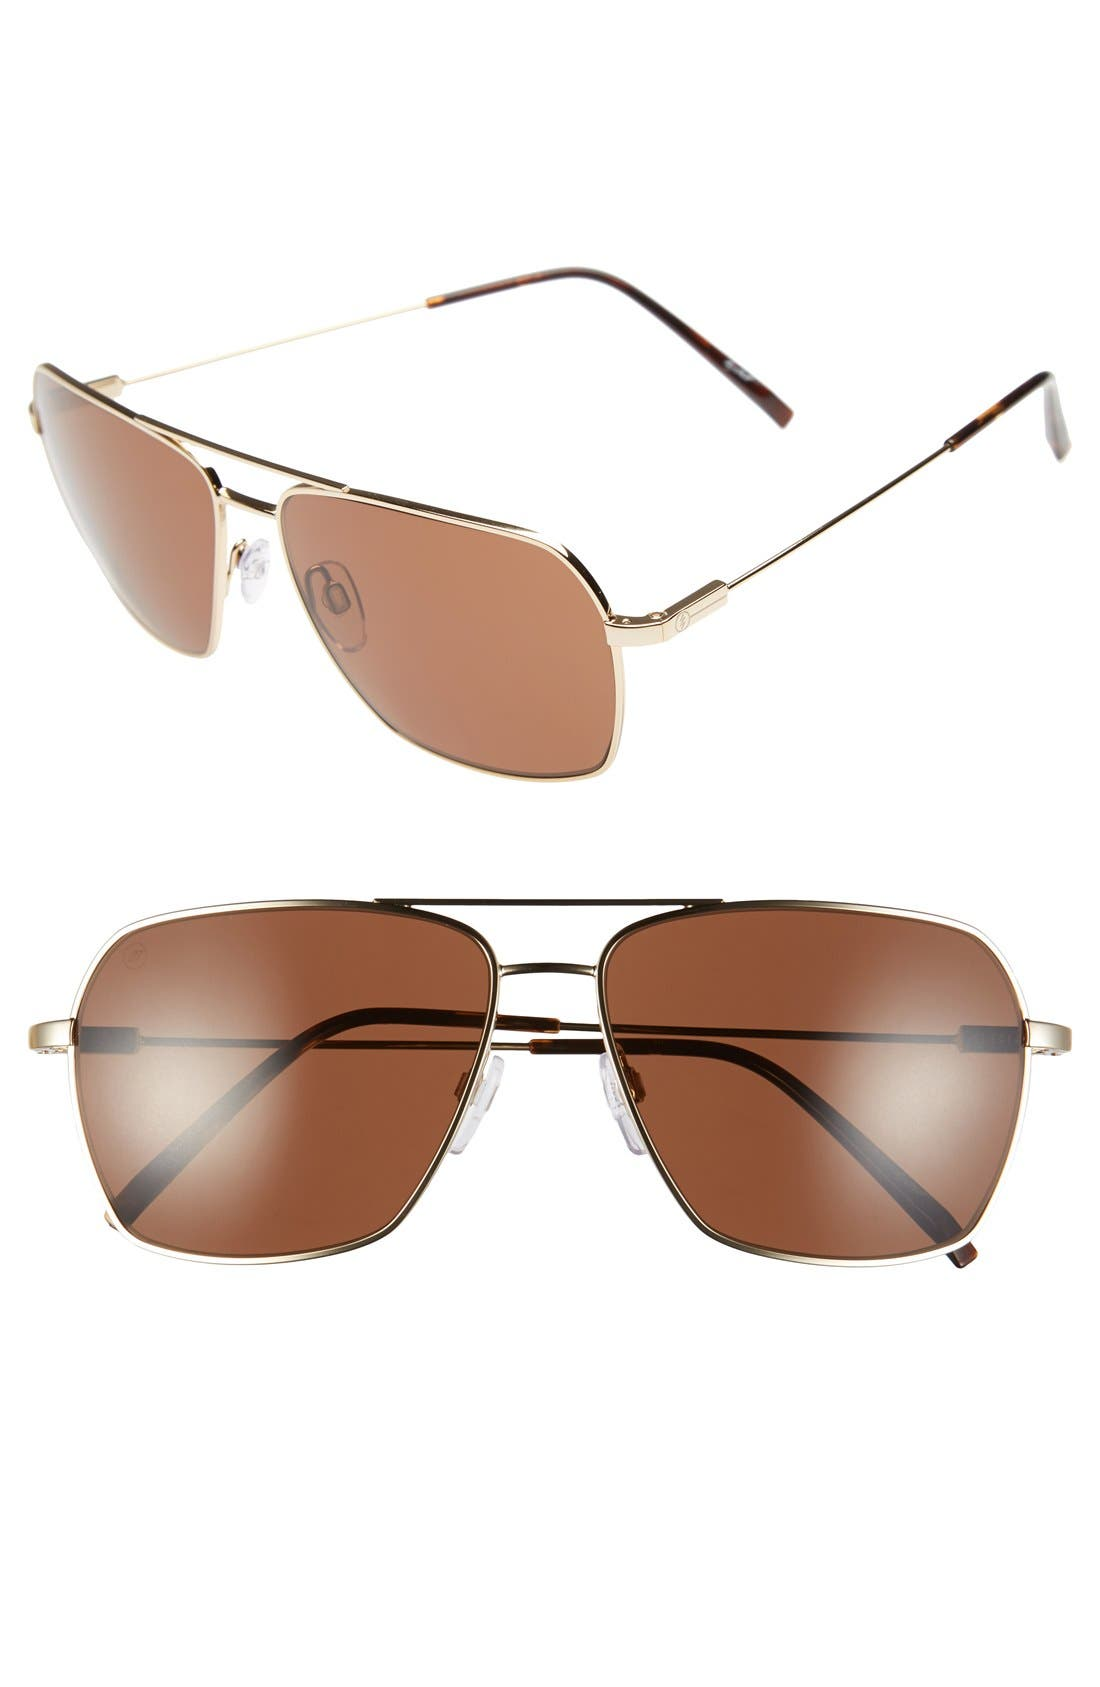 'AV2' 59mm Sunglasses,                             Main thumbnail 1, color,                             GOLD/ BRONZE